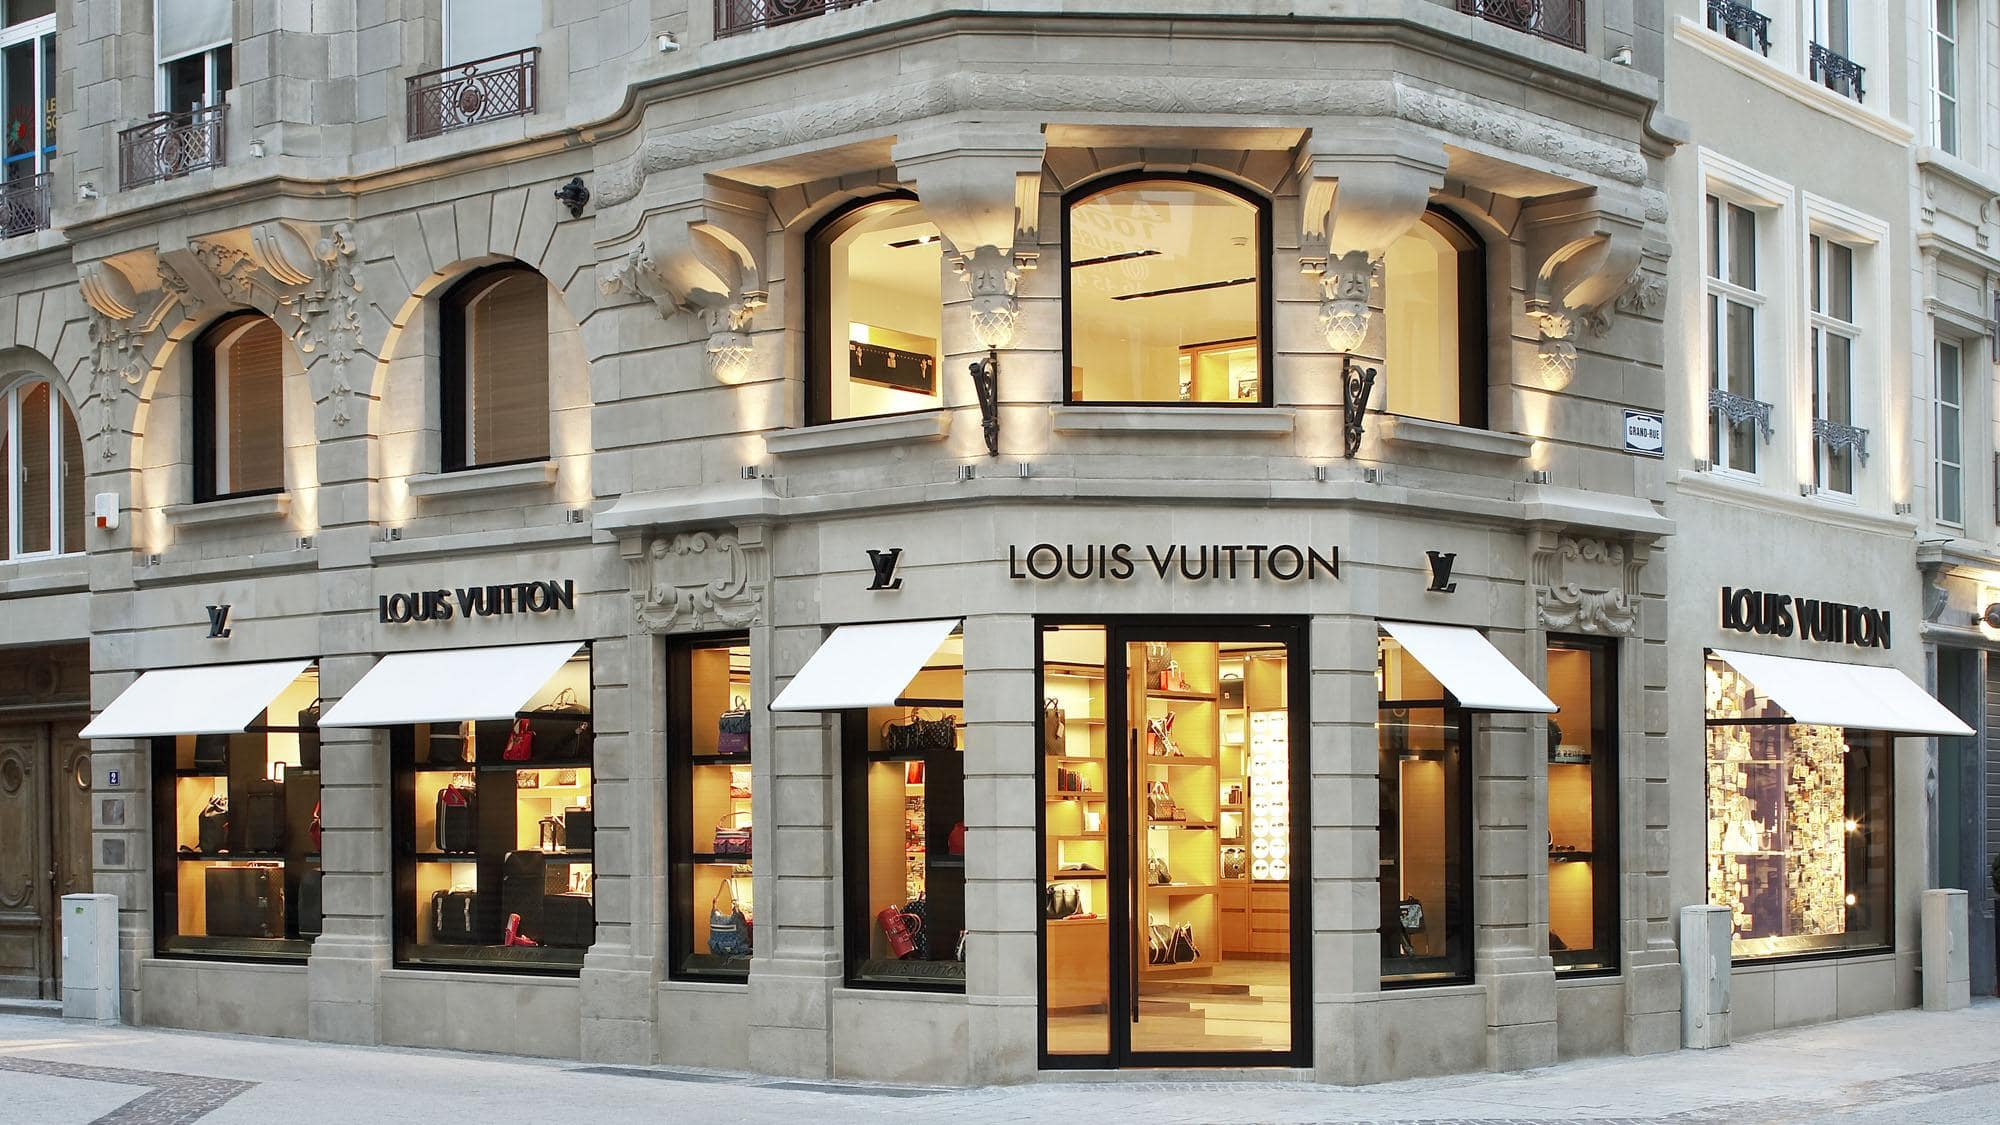 heramo.com - Louis Vuitton